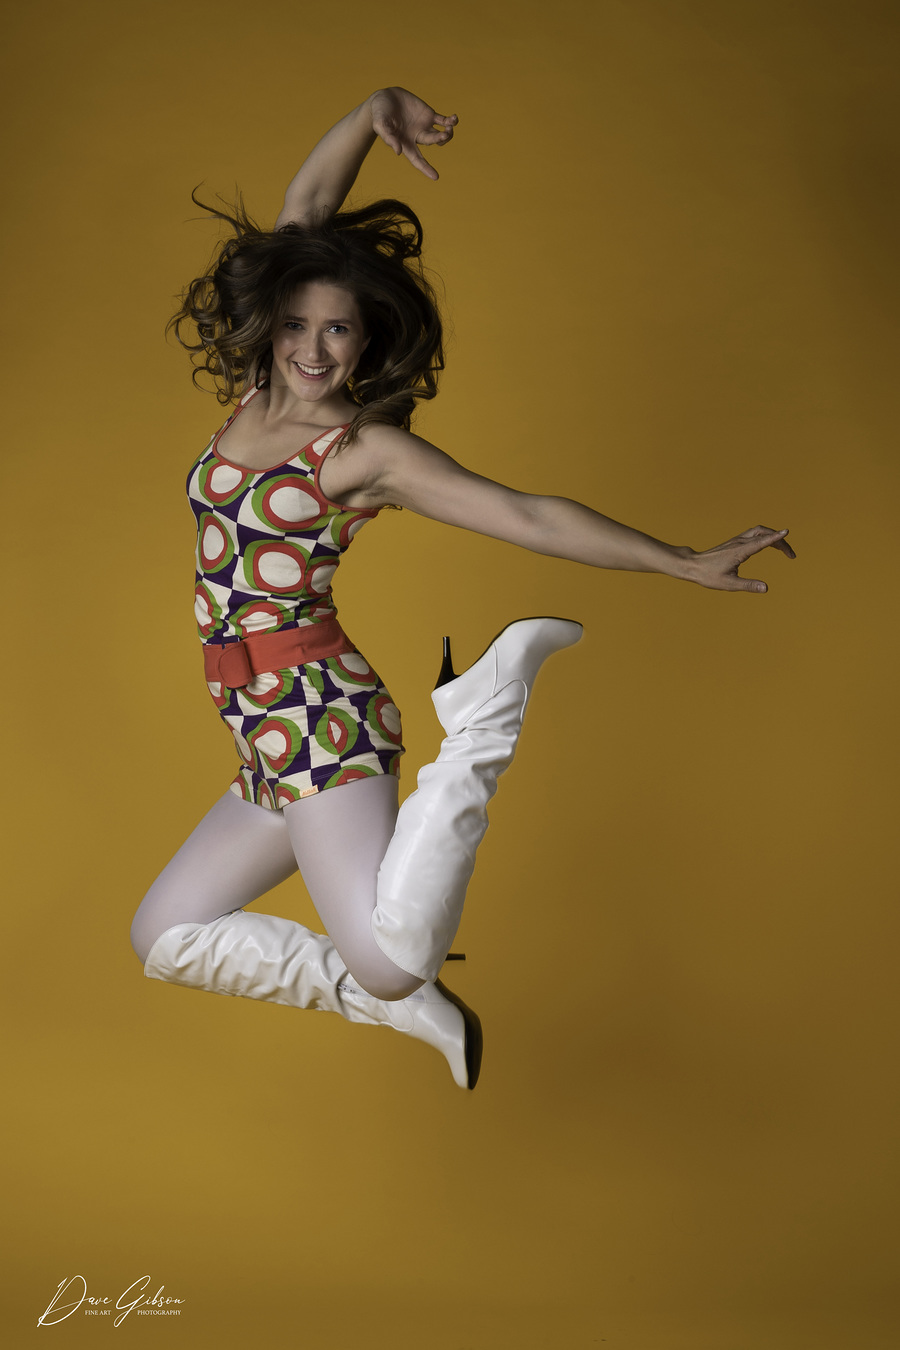 Jump For Joy / Photography by Dave Gibson, Model Rebecca Berny, Makeup by Rebecca Berny, Stylist Rebecca Berny, Hair styling by Rebecca Berny / Uploaded 5th May 2021 @ 09:34 PM